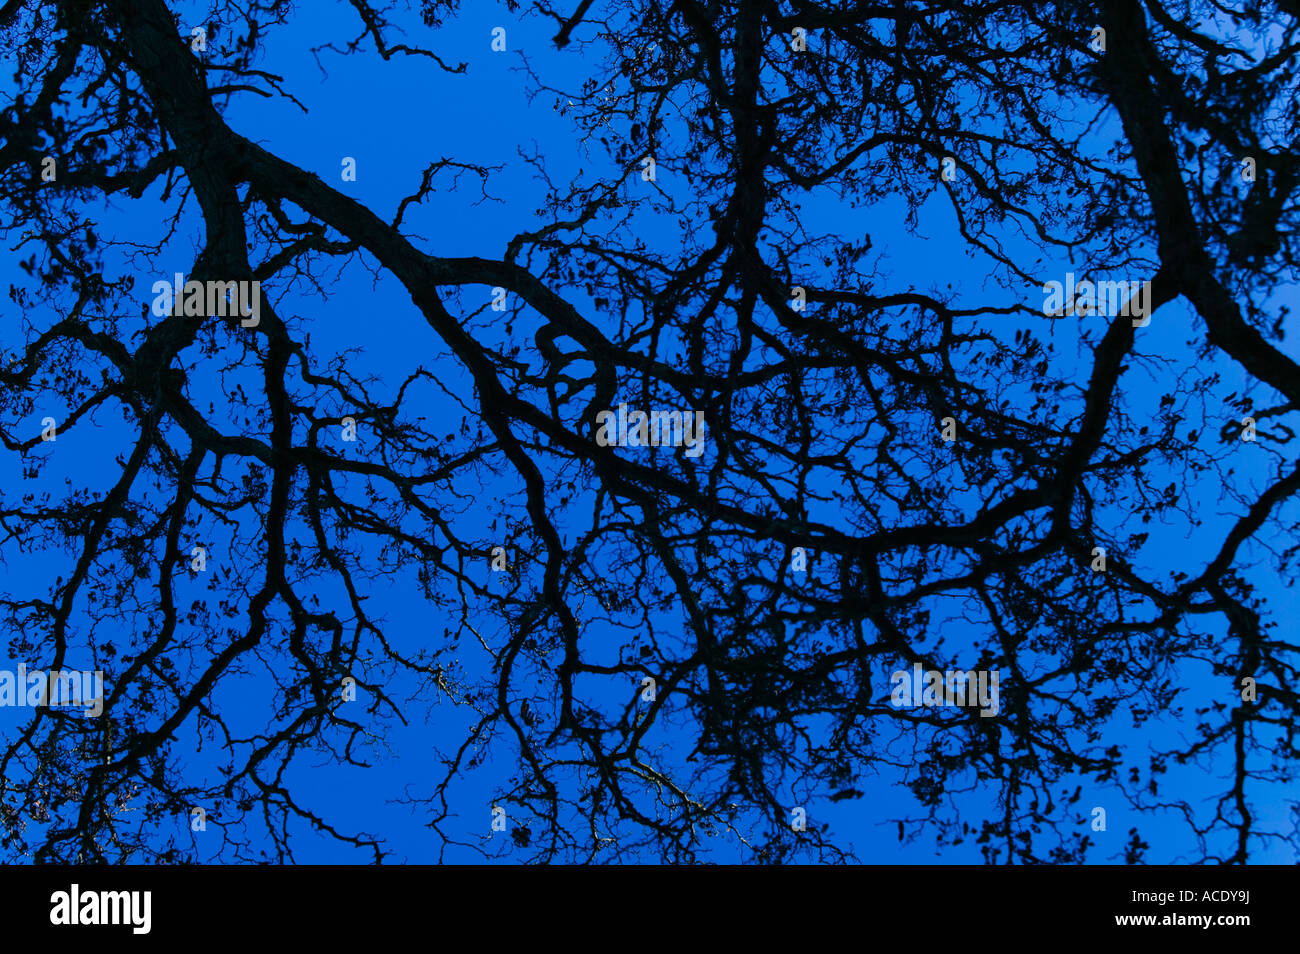 Tree branches against deep blue sky at twilight - Stock Image